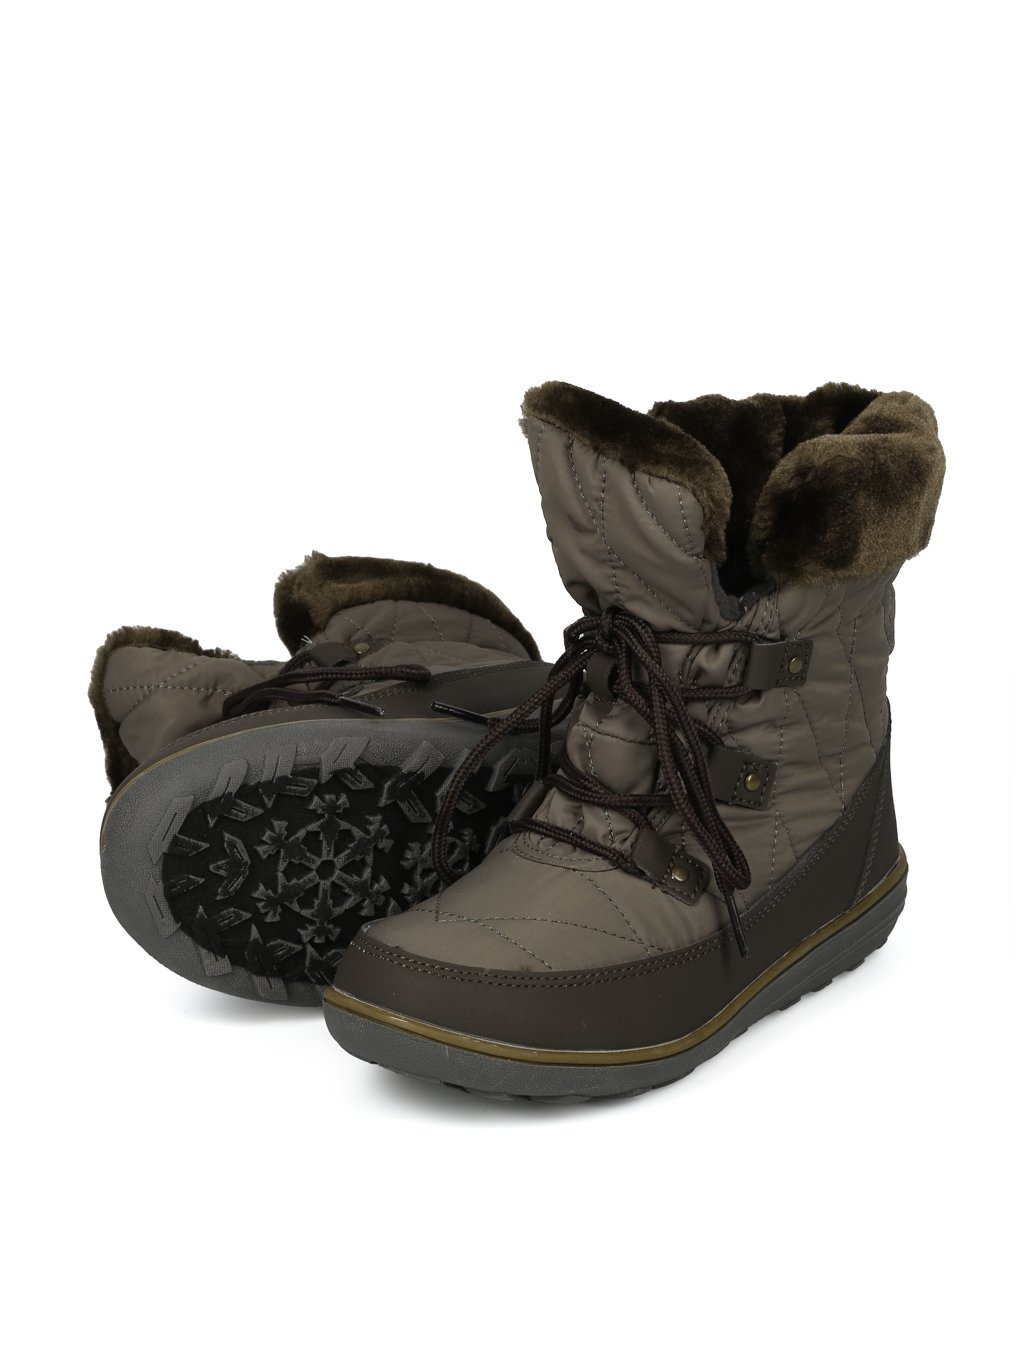 Alrisco Faux Fur Trim Lace up Outdoor Winter Boot HG06 B078MR6VND 5.5 M US|Olive Mix Media